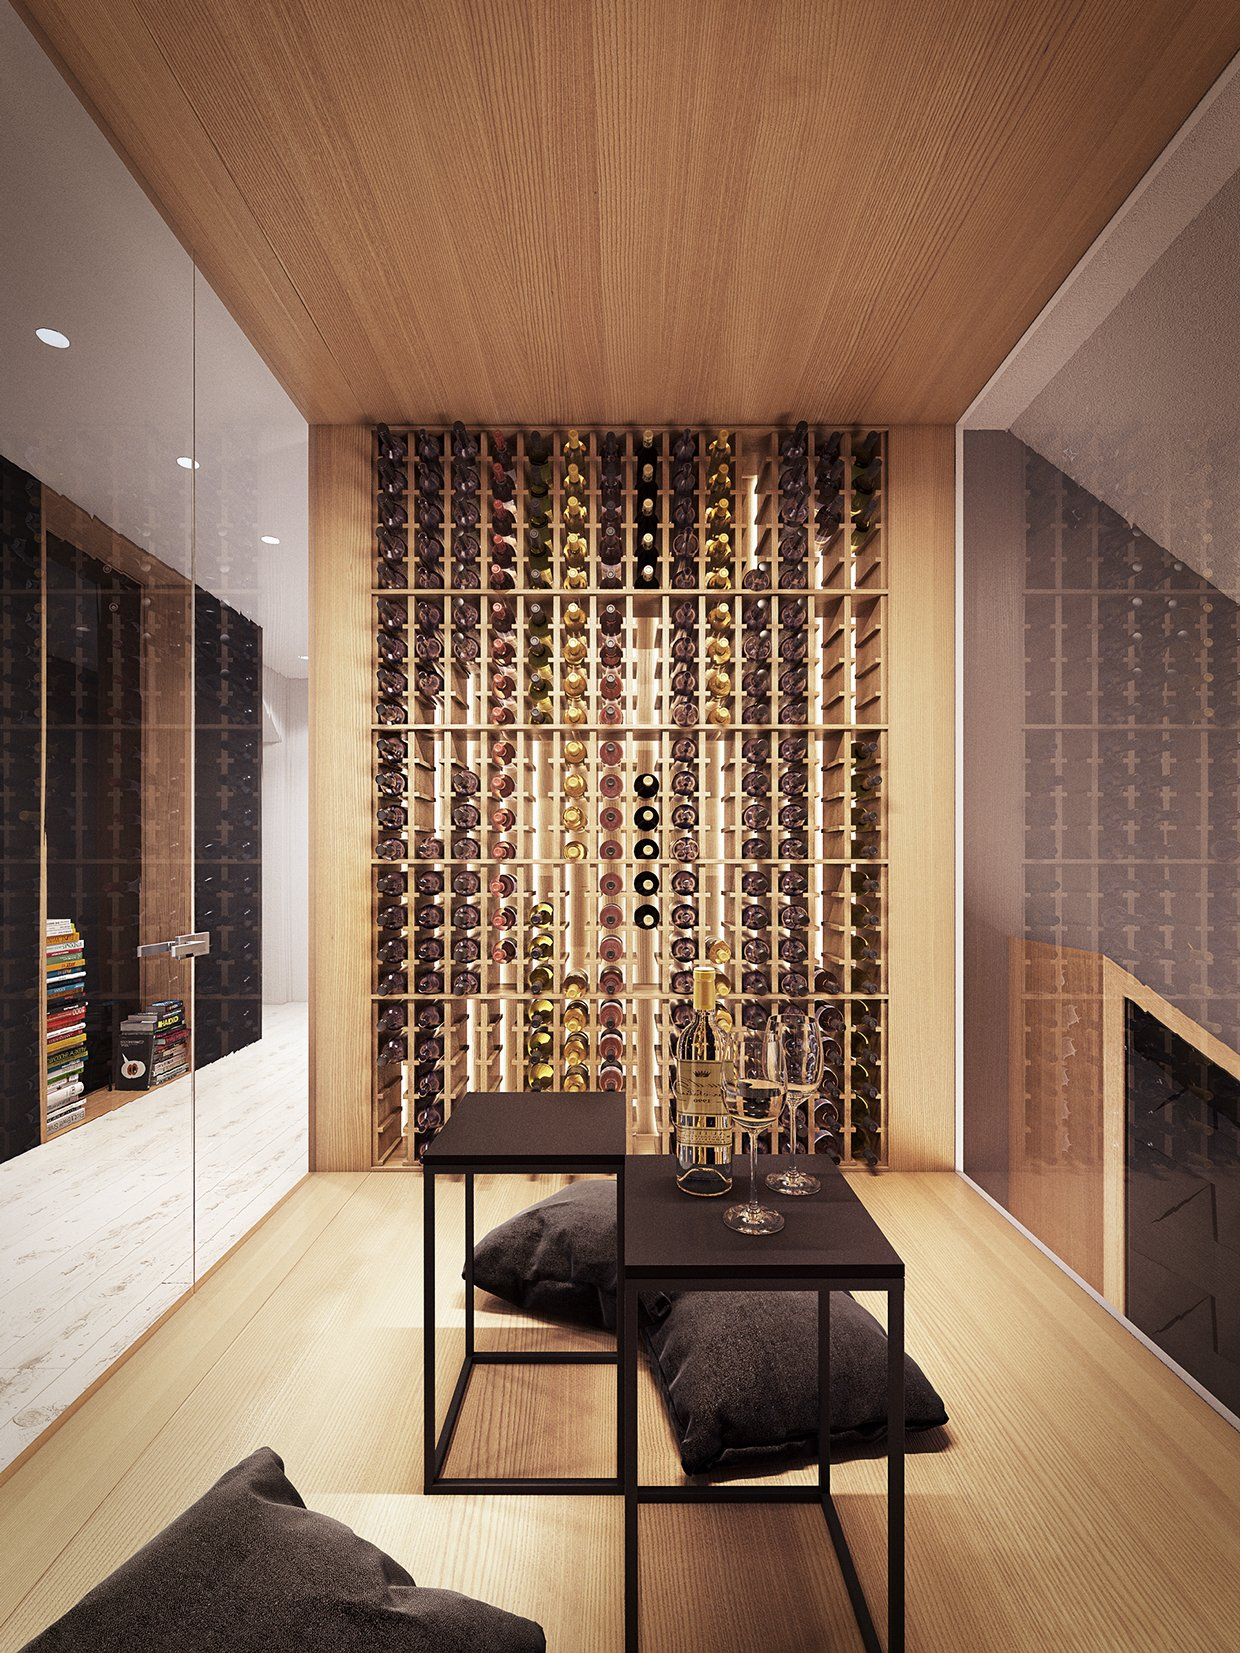 Wine cellar design interior design ideas for Home wine cellar design ideas